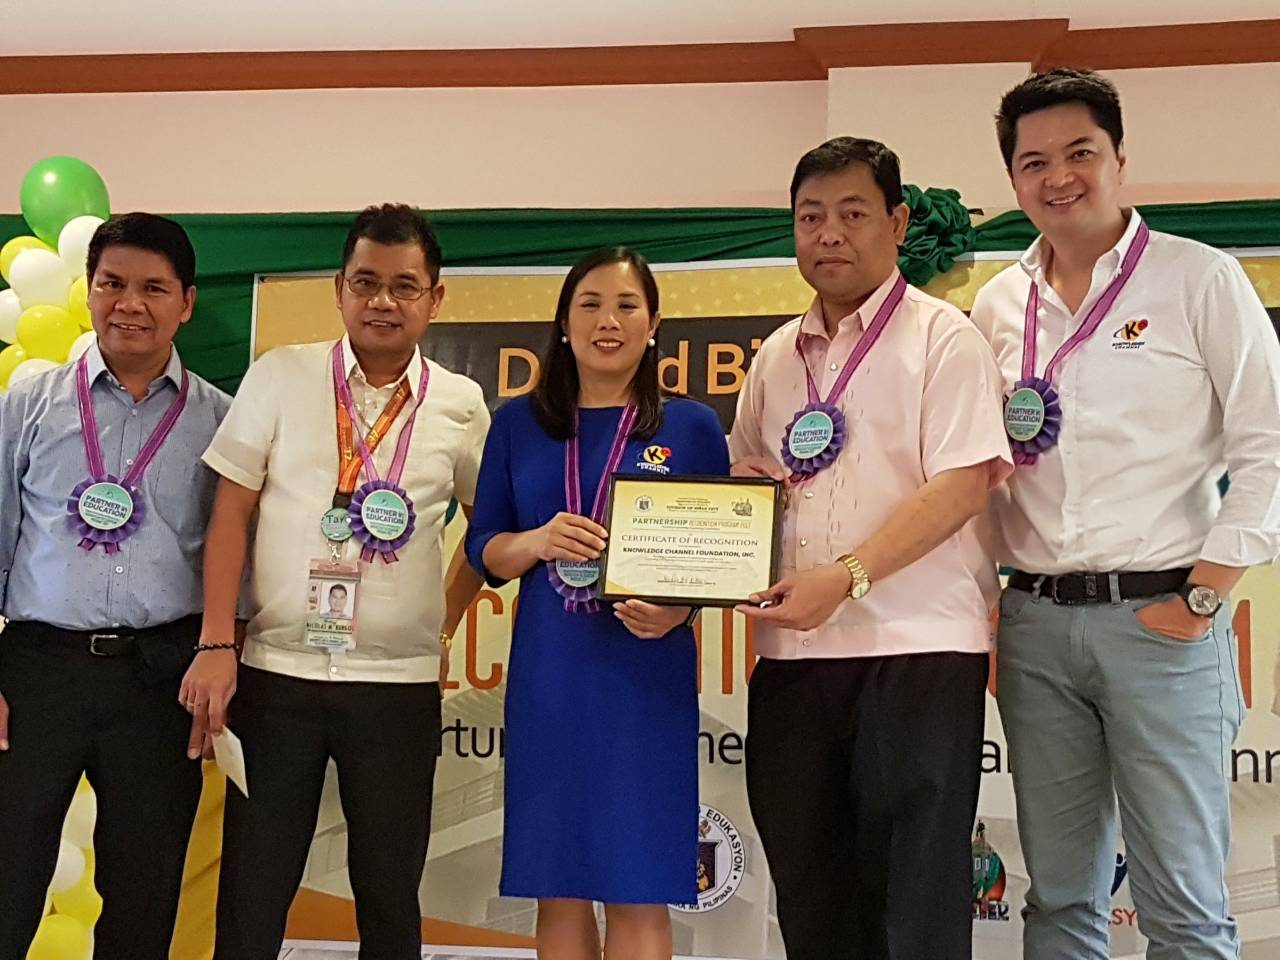 KCFI president Rina Lopez-Bautista (center) with (l-r) DepEd Biñan chief education supervisor Bayani Enriquez, ASDS Nicolas Burgos, Biñan SDS Hereberto Miranda and KCFI director of Operations Edric Calma